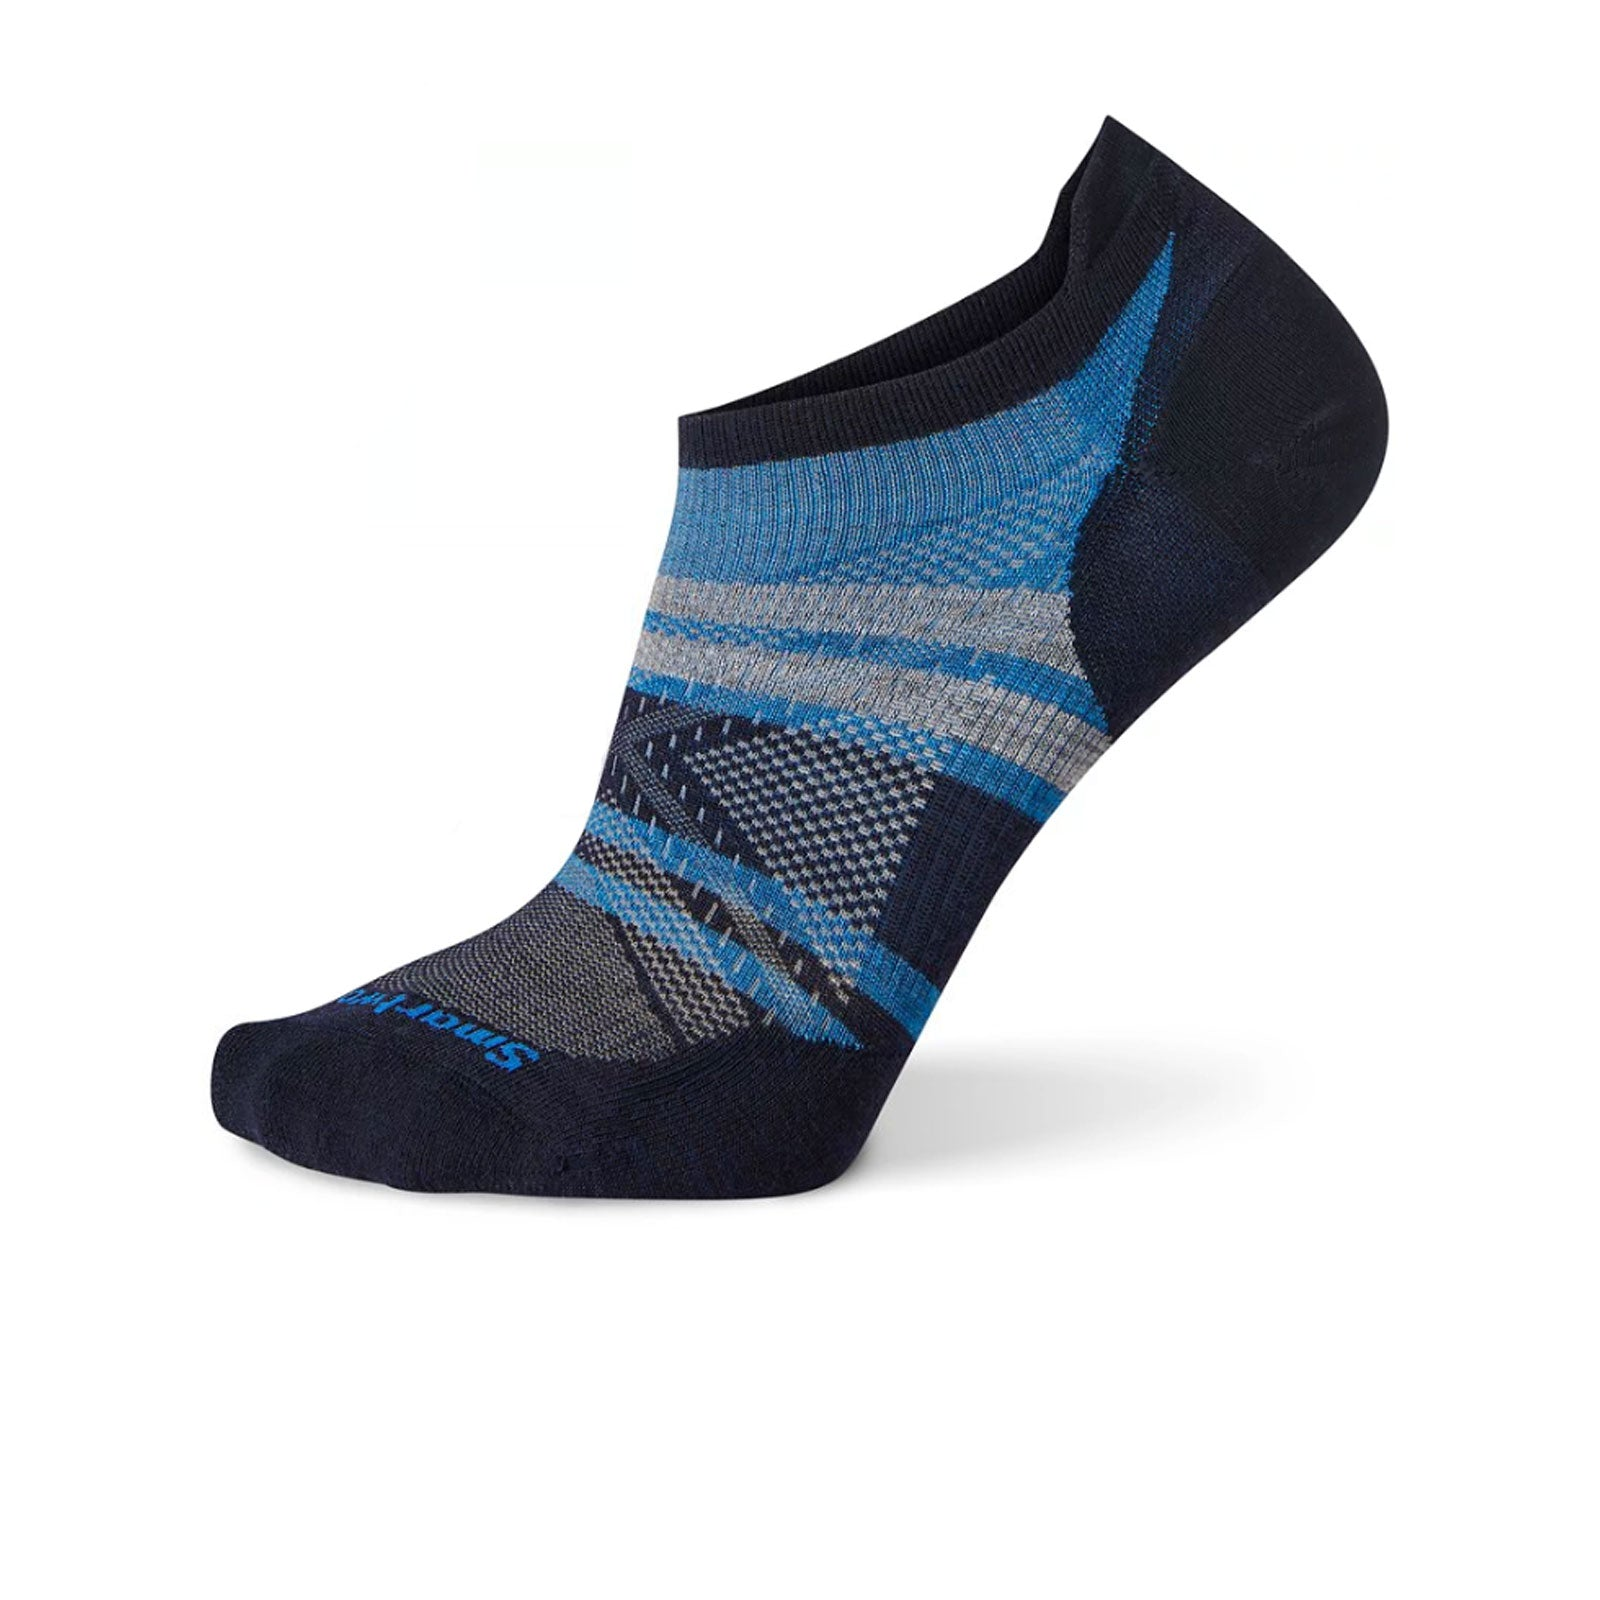 Smartwool PhD Run Ultra Light Pattern Micro (Men) - Deep Navy Socks - Perf - Micro - The Heel Shoe Fitters